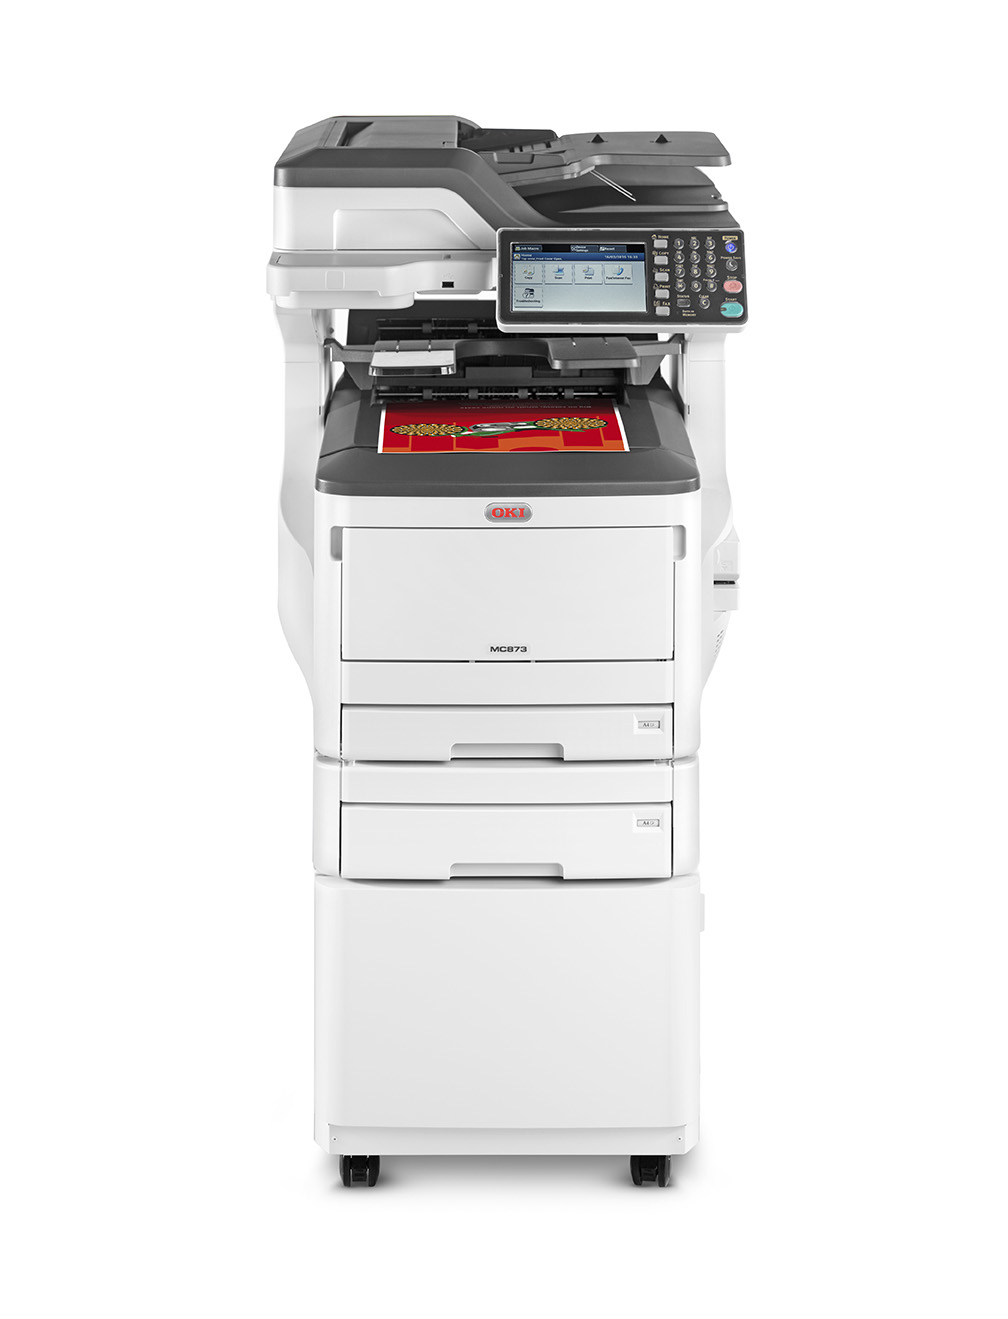 Mc873dnct - Color Multifunction Printer - LED - A3 - USB / Ethernet